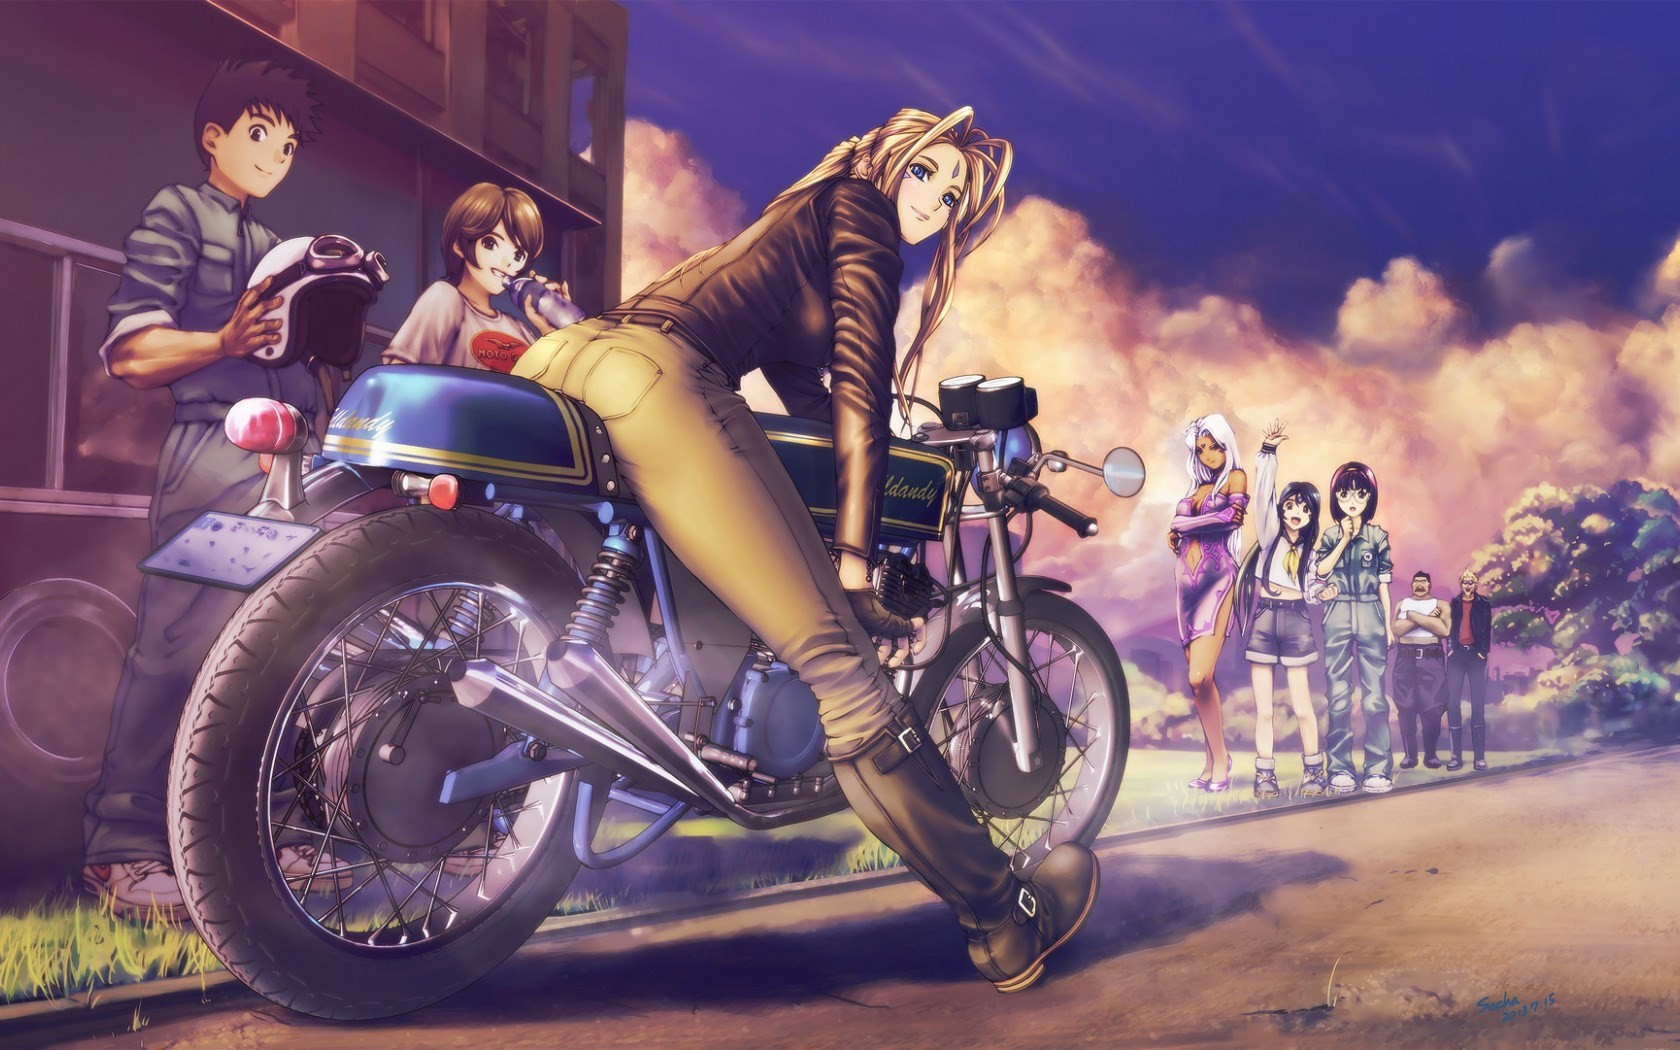 Anime Girl On Bike